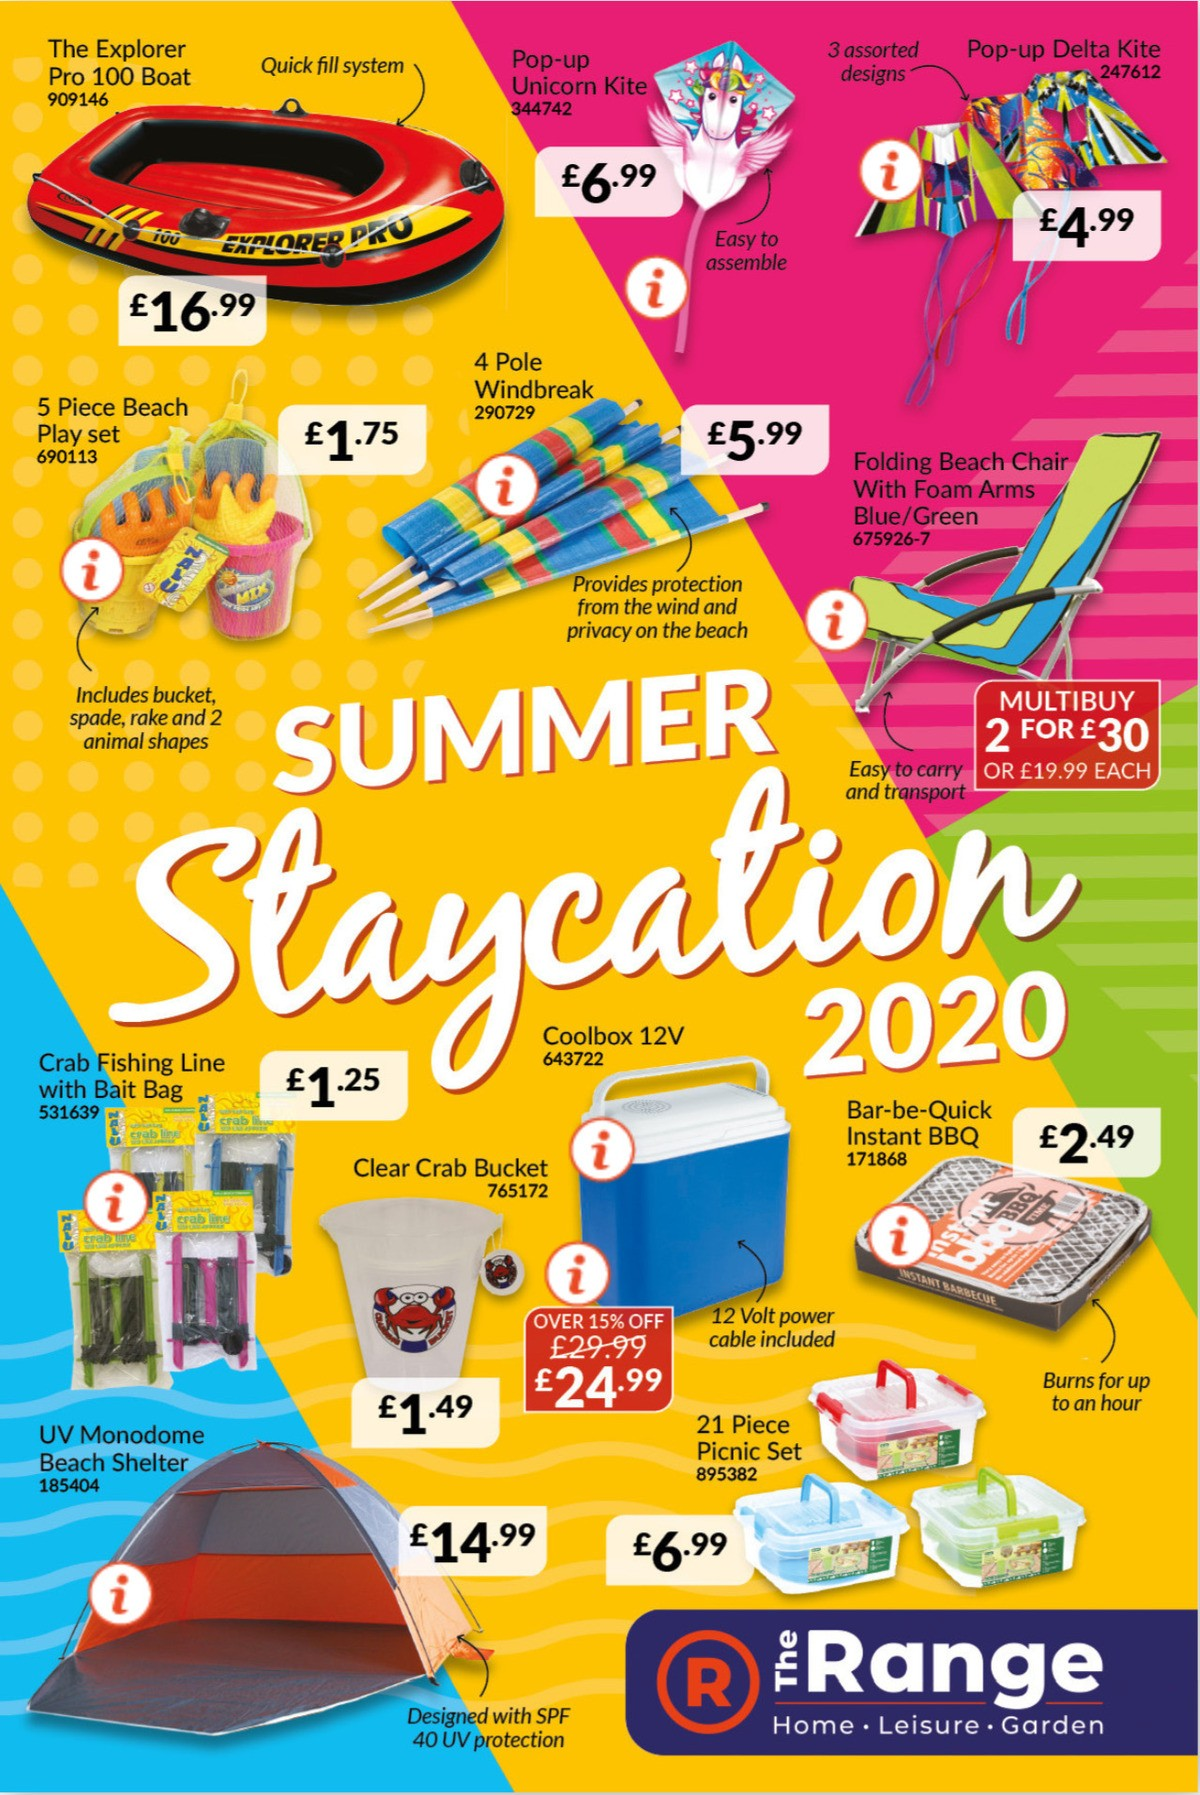 The Range Summer Staycation Offers from July 3